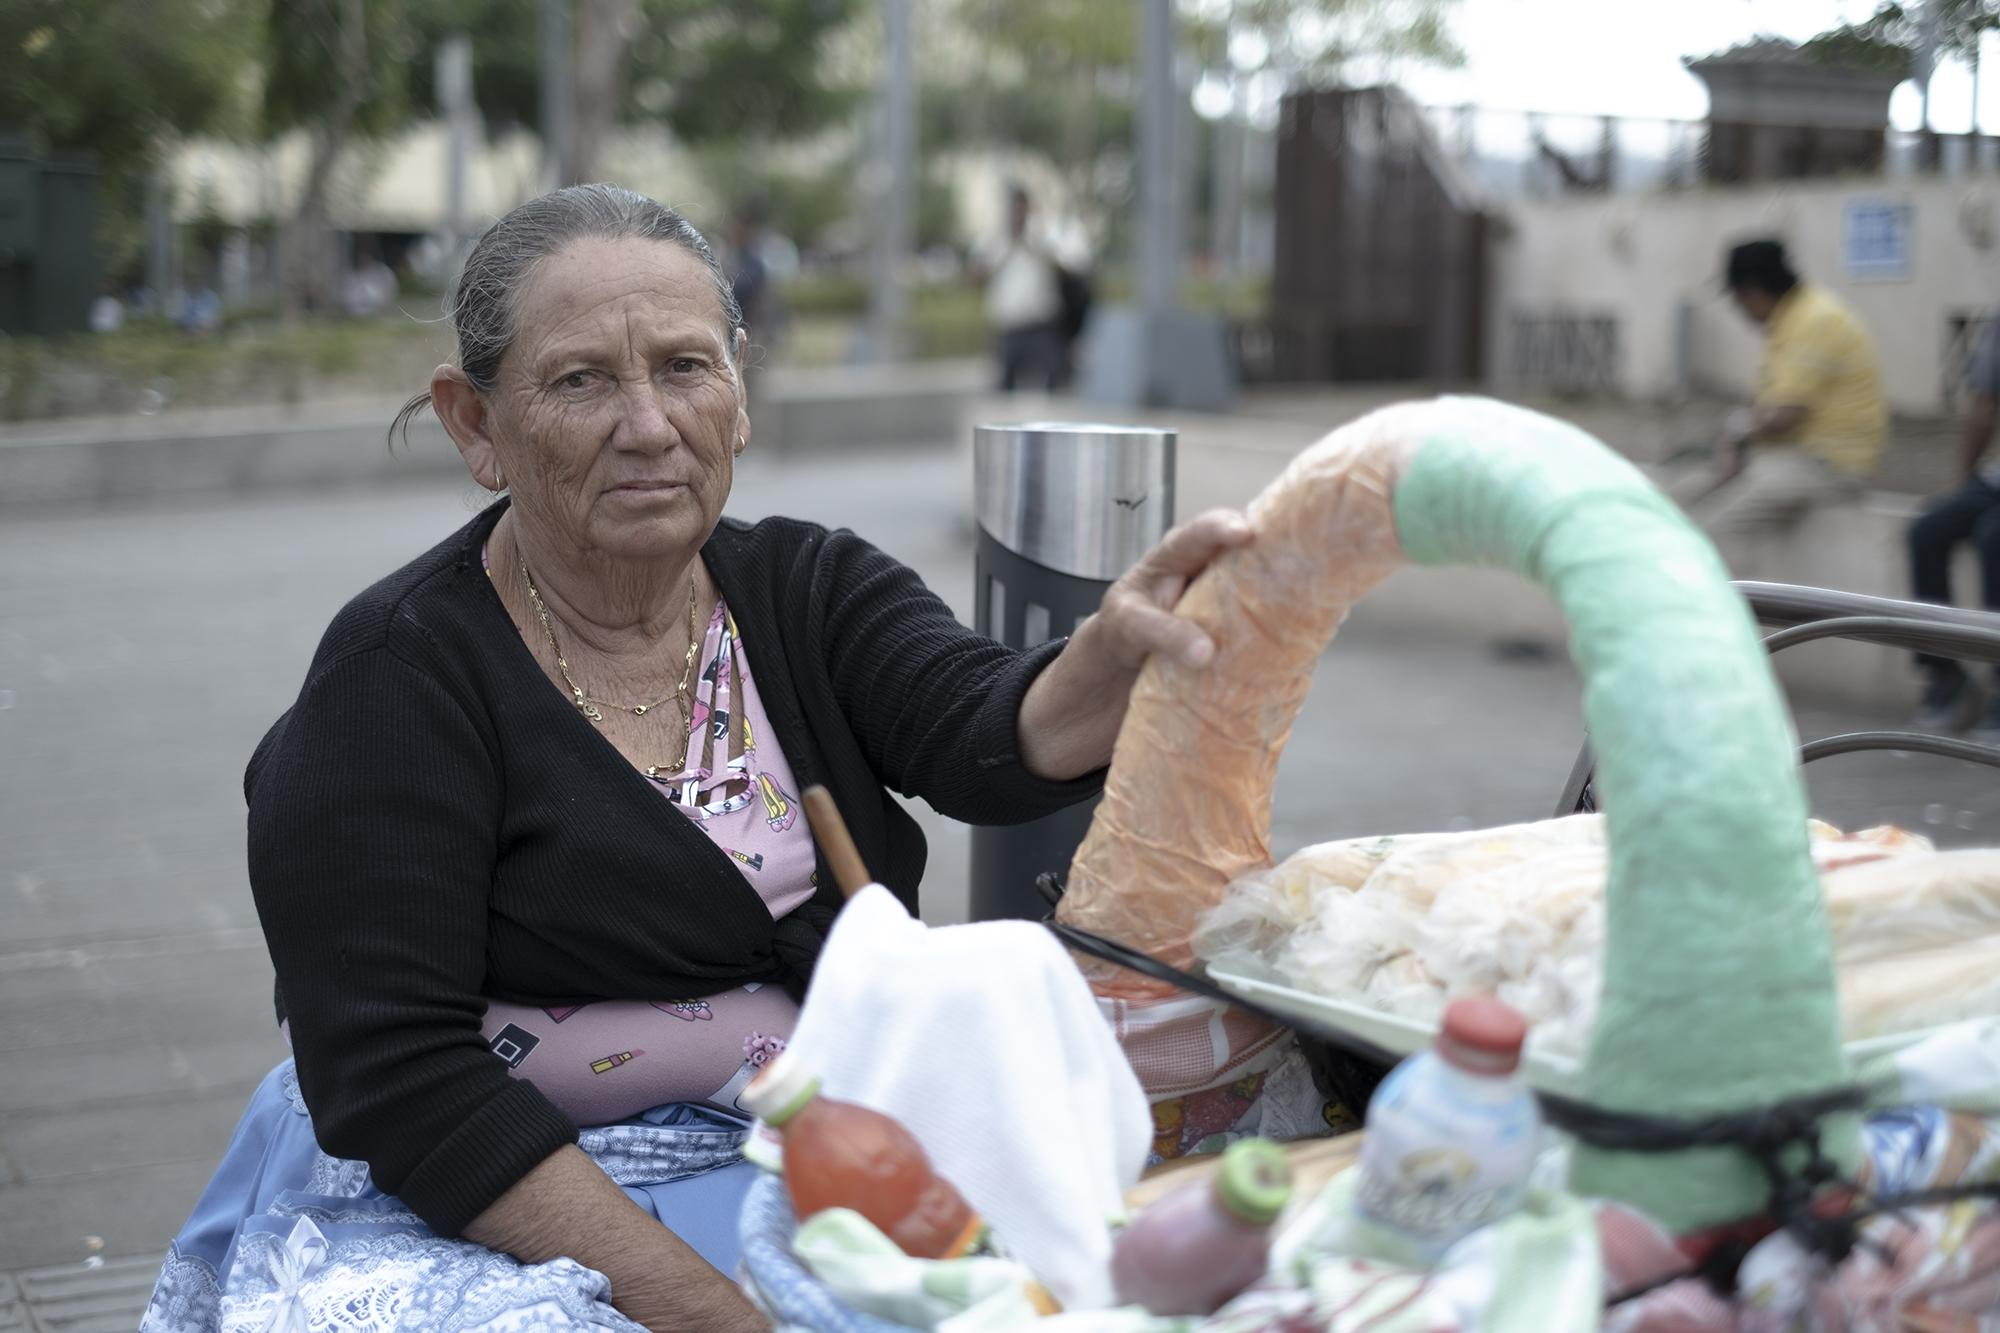 "María Mejía, 64, lives in Amatepec, Soyapango. Her only source of income is selling panes mata niños, popular street breads topped with cabbage, mortadella, and salsa. ""I sell $20 of product per day, and take home about $5 after overhead costs,"" she said. ""It's complicated with the coronavirus, but if I stay home, I'll starve."""